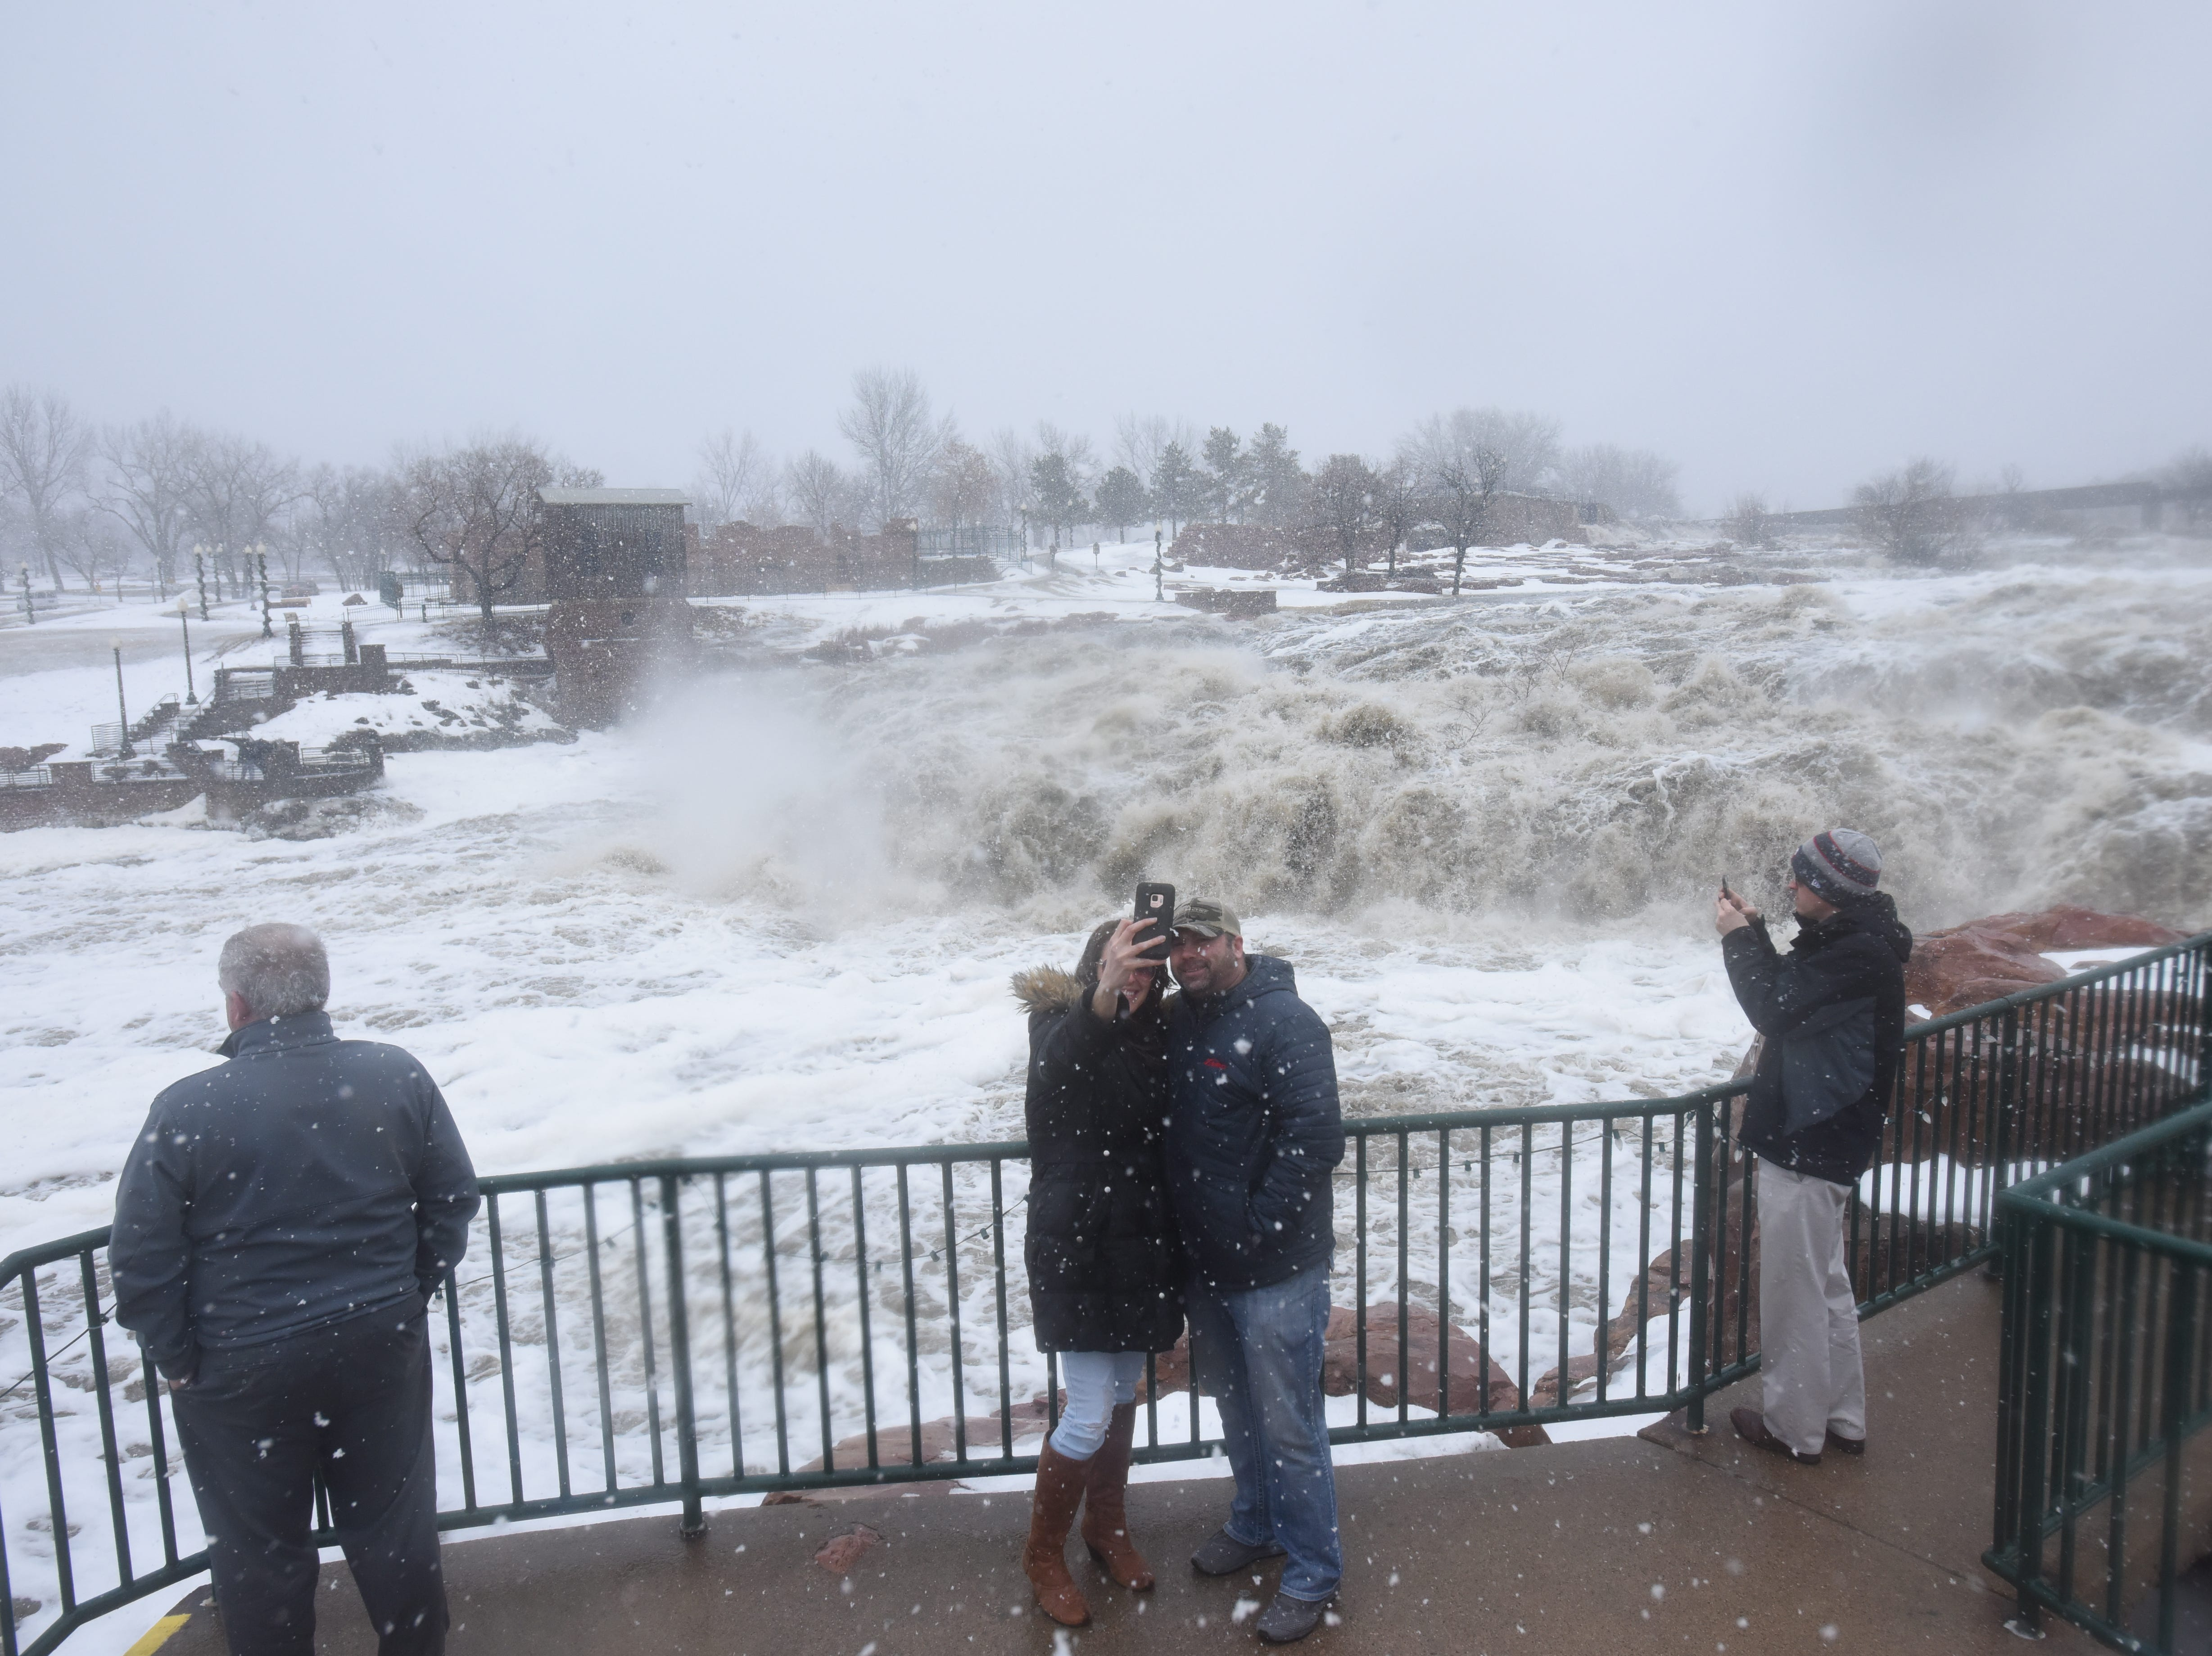 Vanessa Thaler and Shawn Rohrich pose for a photo in front of the rushing falls at Falls Park Thursday, March 14, as waters flooded roads all around Sioux Falls.